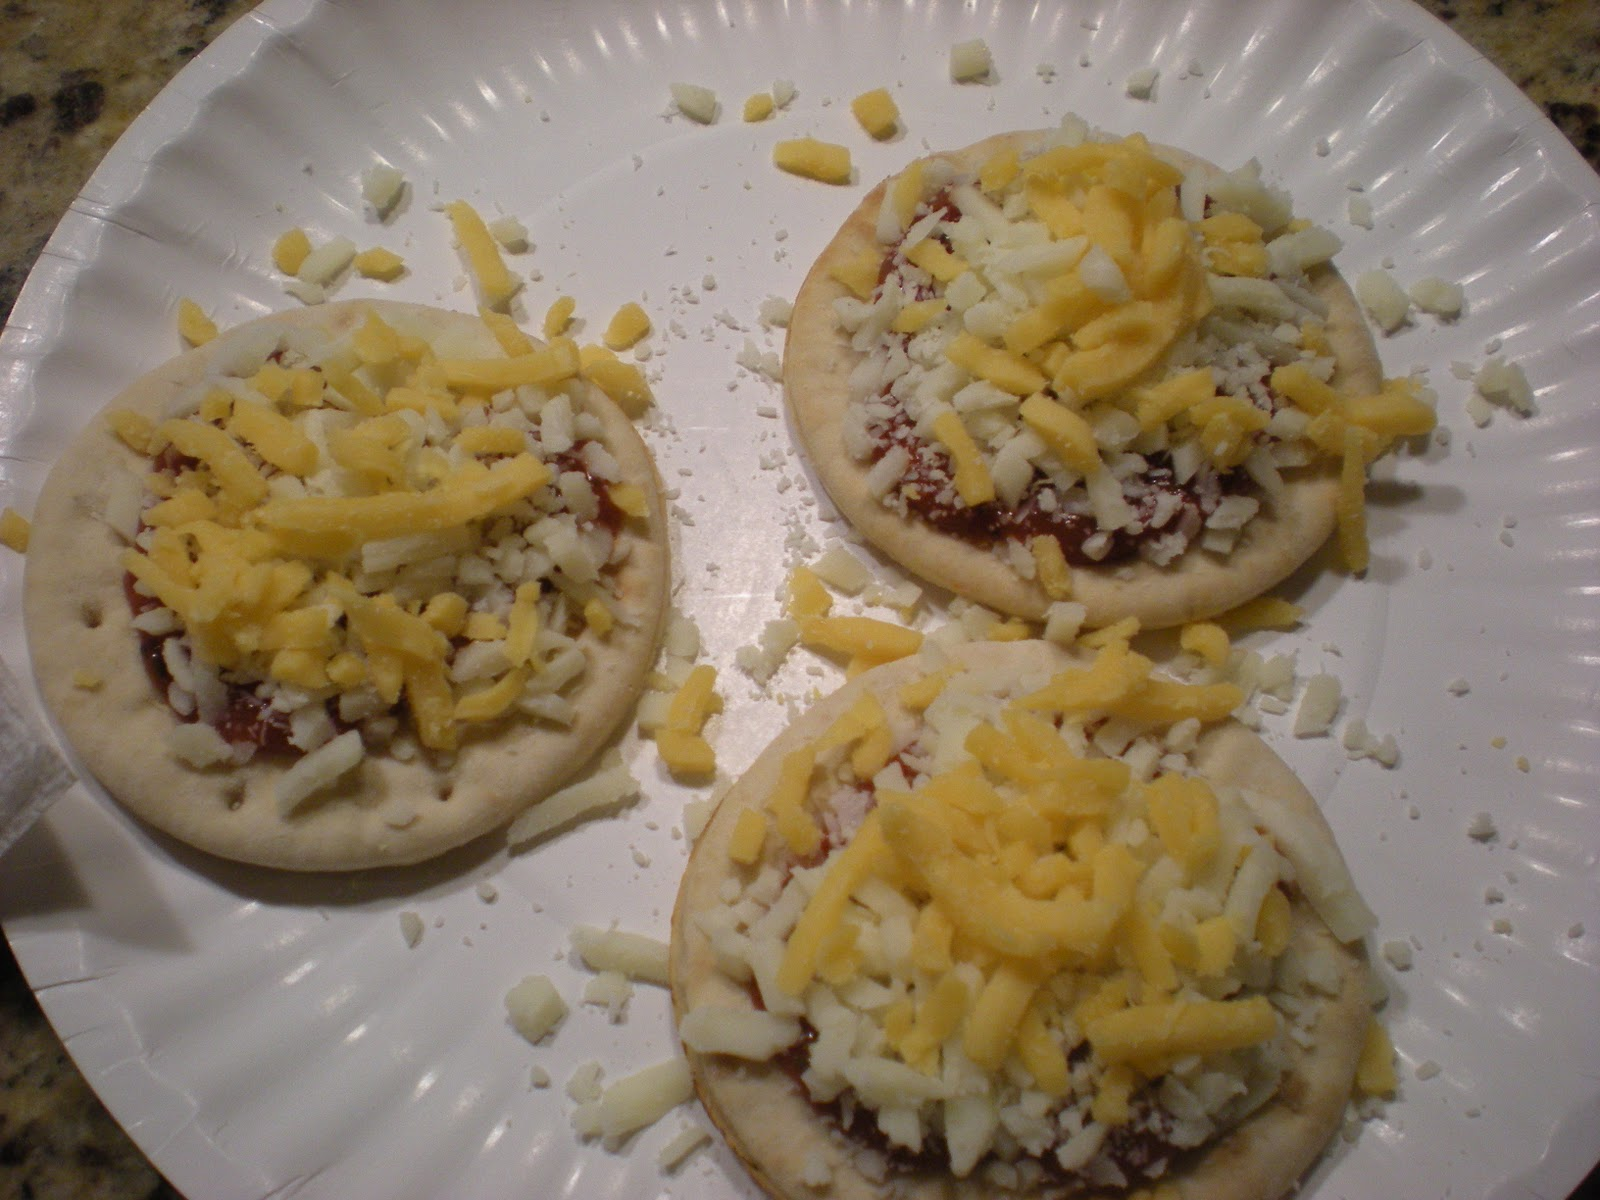 Lunch Packs furthermore Oscar Mayer Lunchables Extra Cheesy together with A 12945441 together with Lunchables Cheese Pizza moreover 13908431. on oscar mayer lunchables extra cheesy